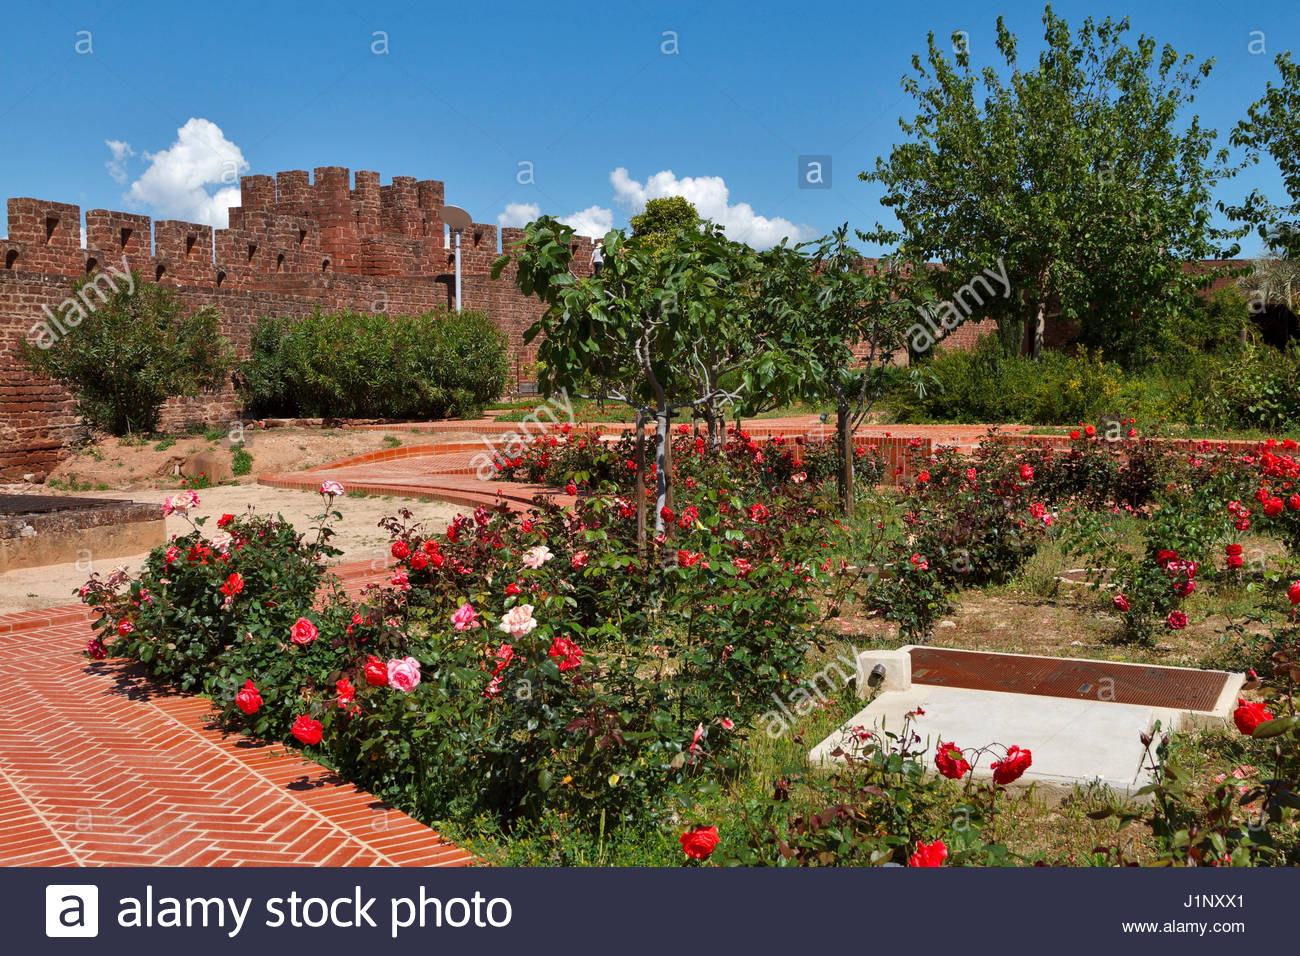 SILVES CASTLE GARDENS ALGARVE PORTUGAL Stock Photo: 138779705 - Alamy